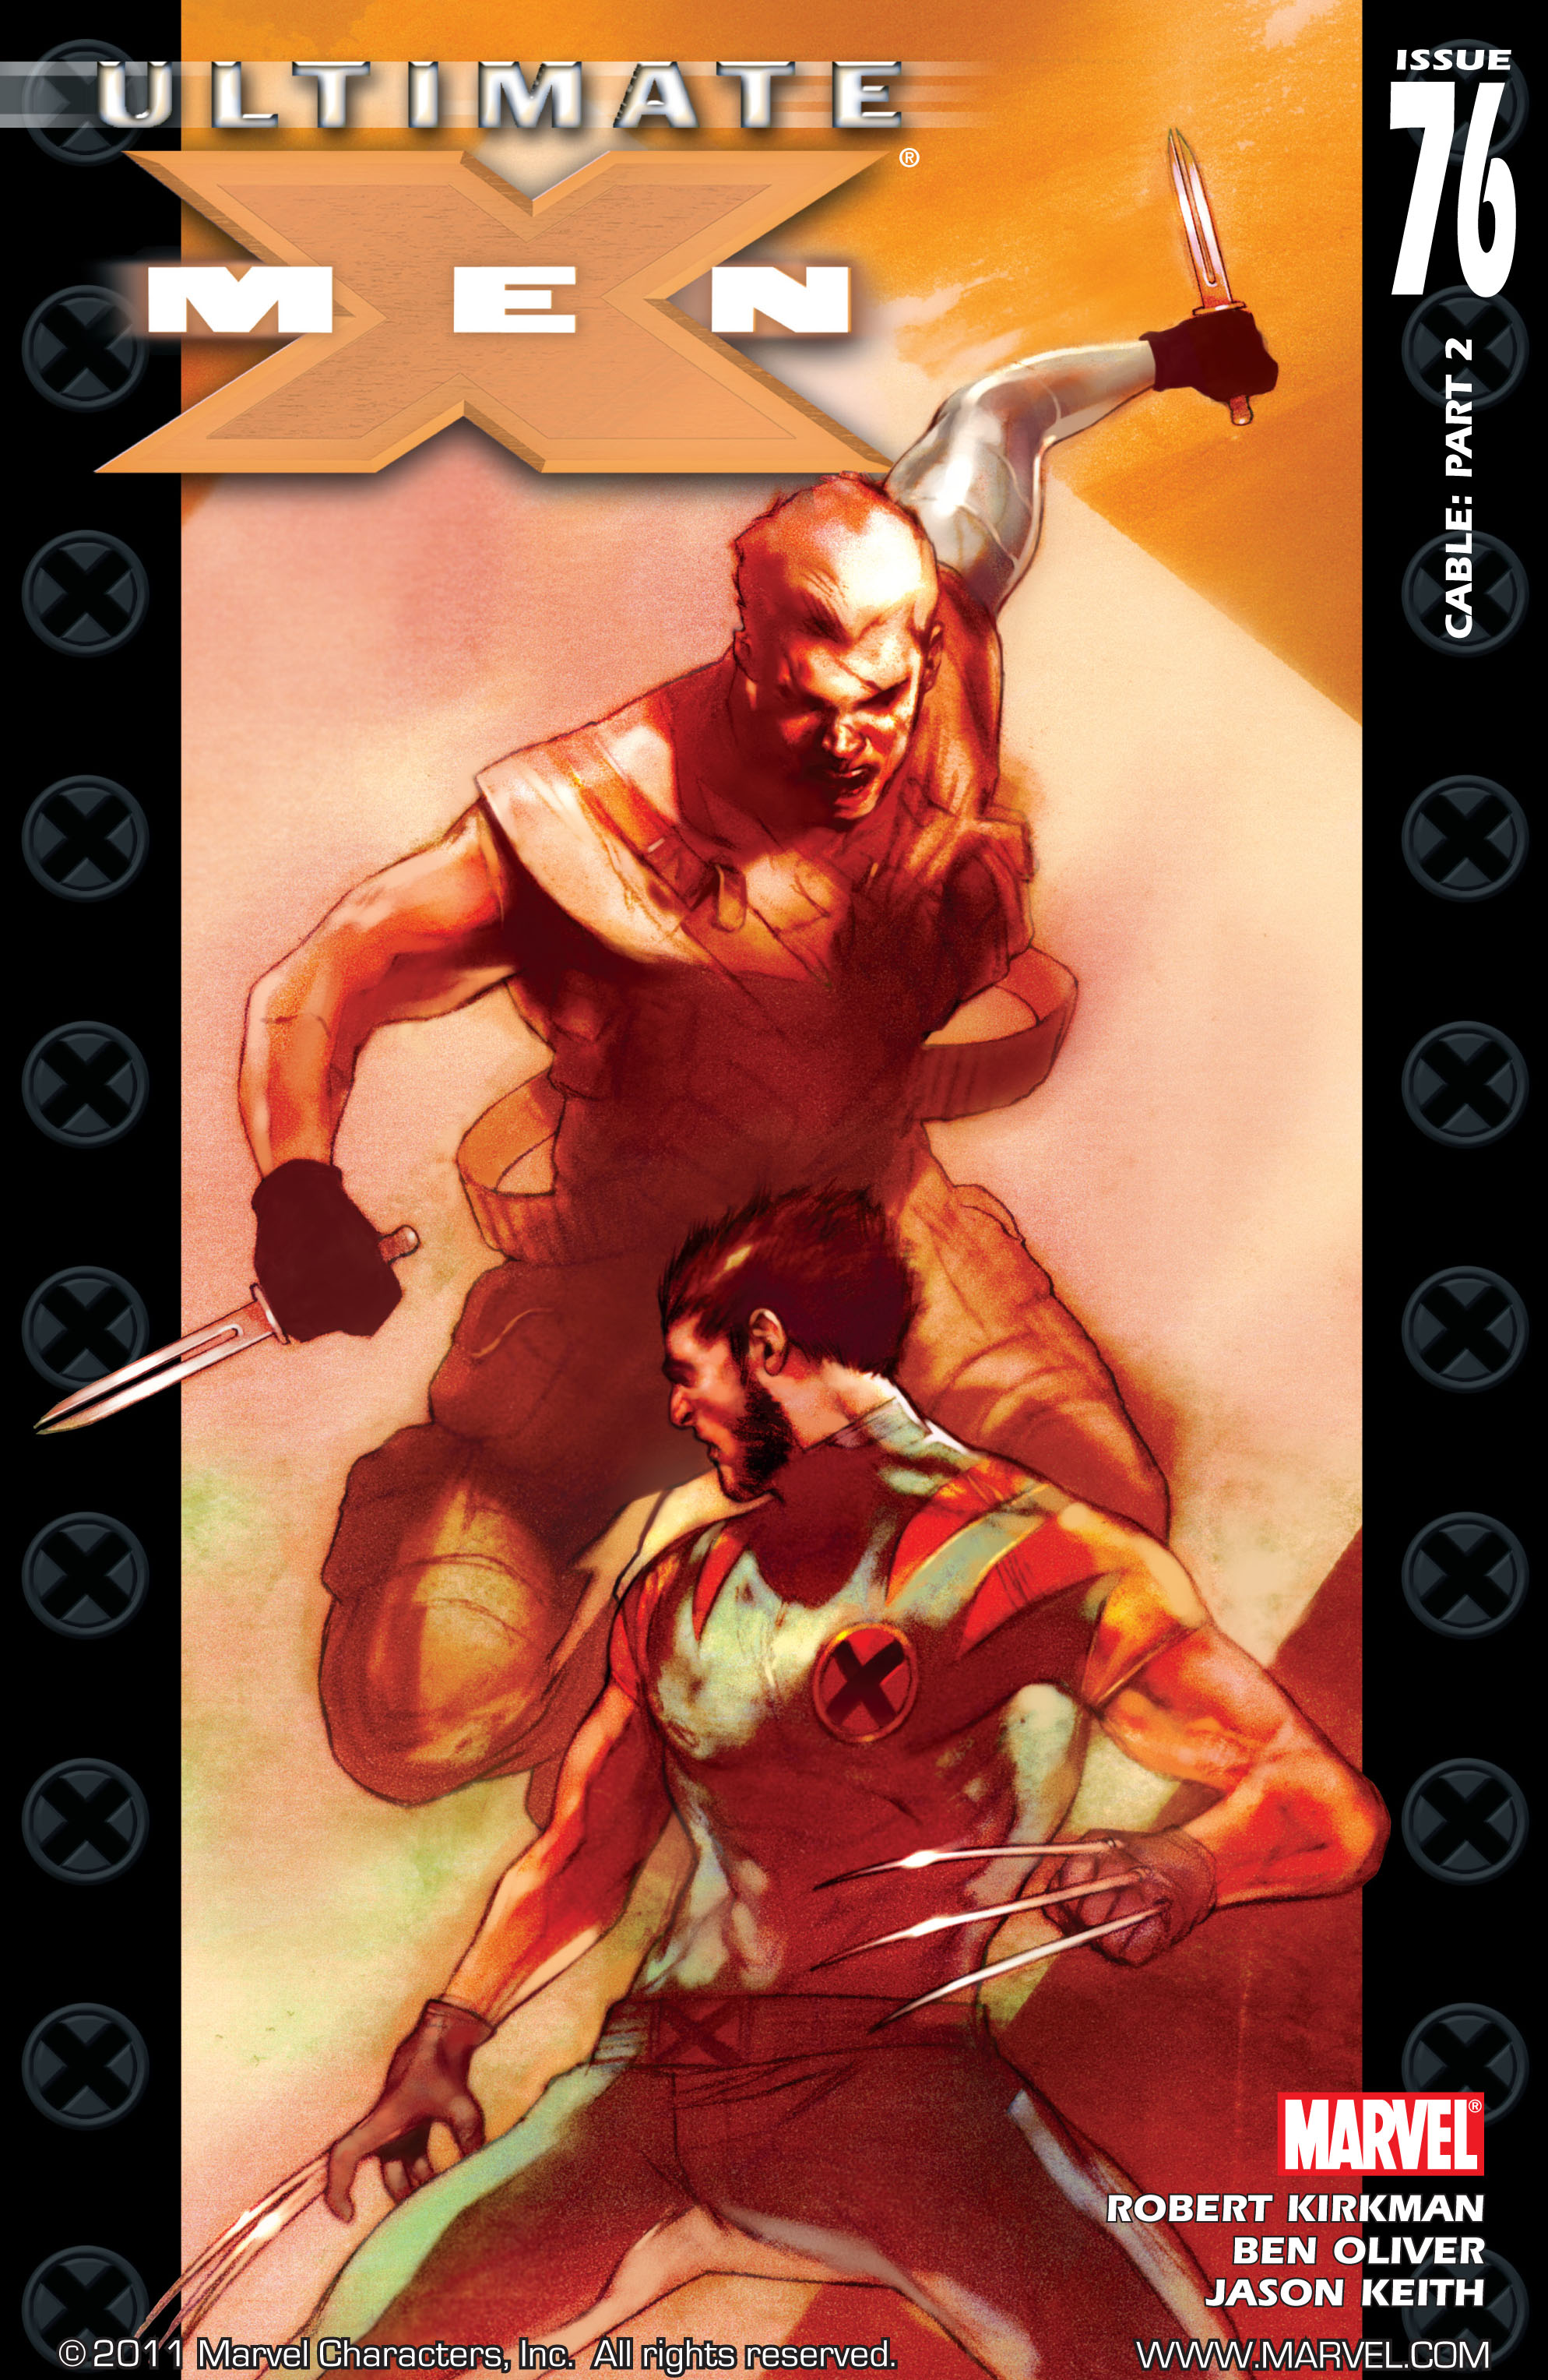 Read online Ultimate X-Men comic -  Issue #76 - 1